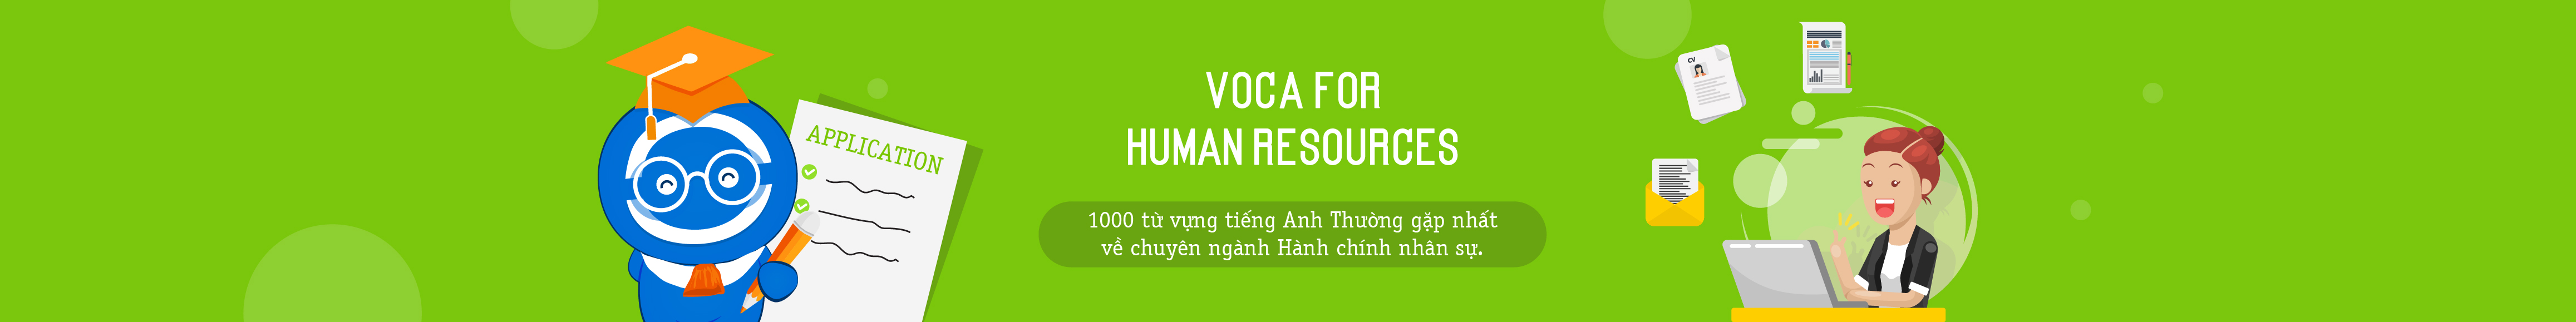 VOCA FOR HUMAN RESOURCES